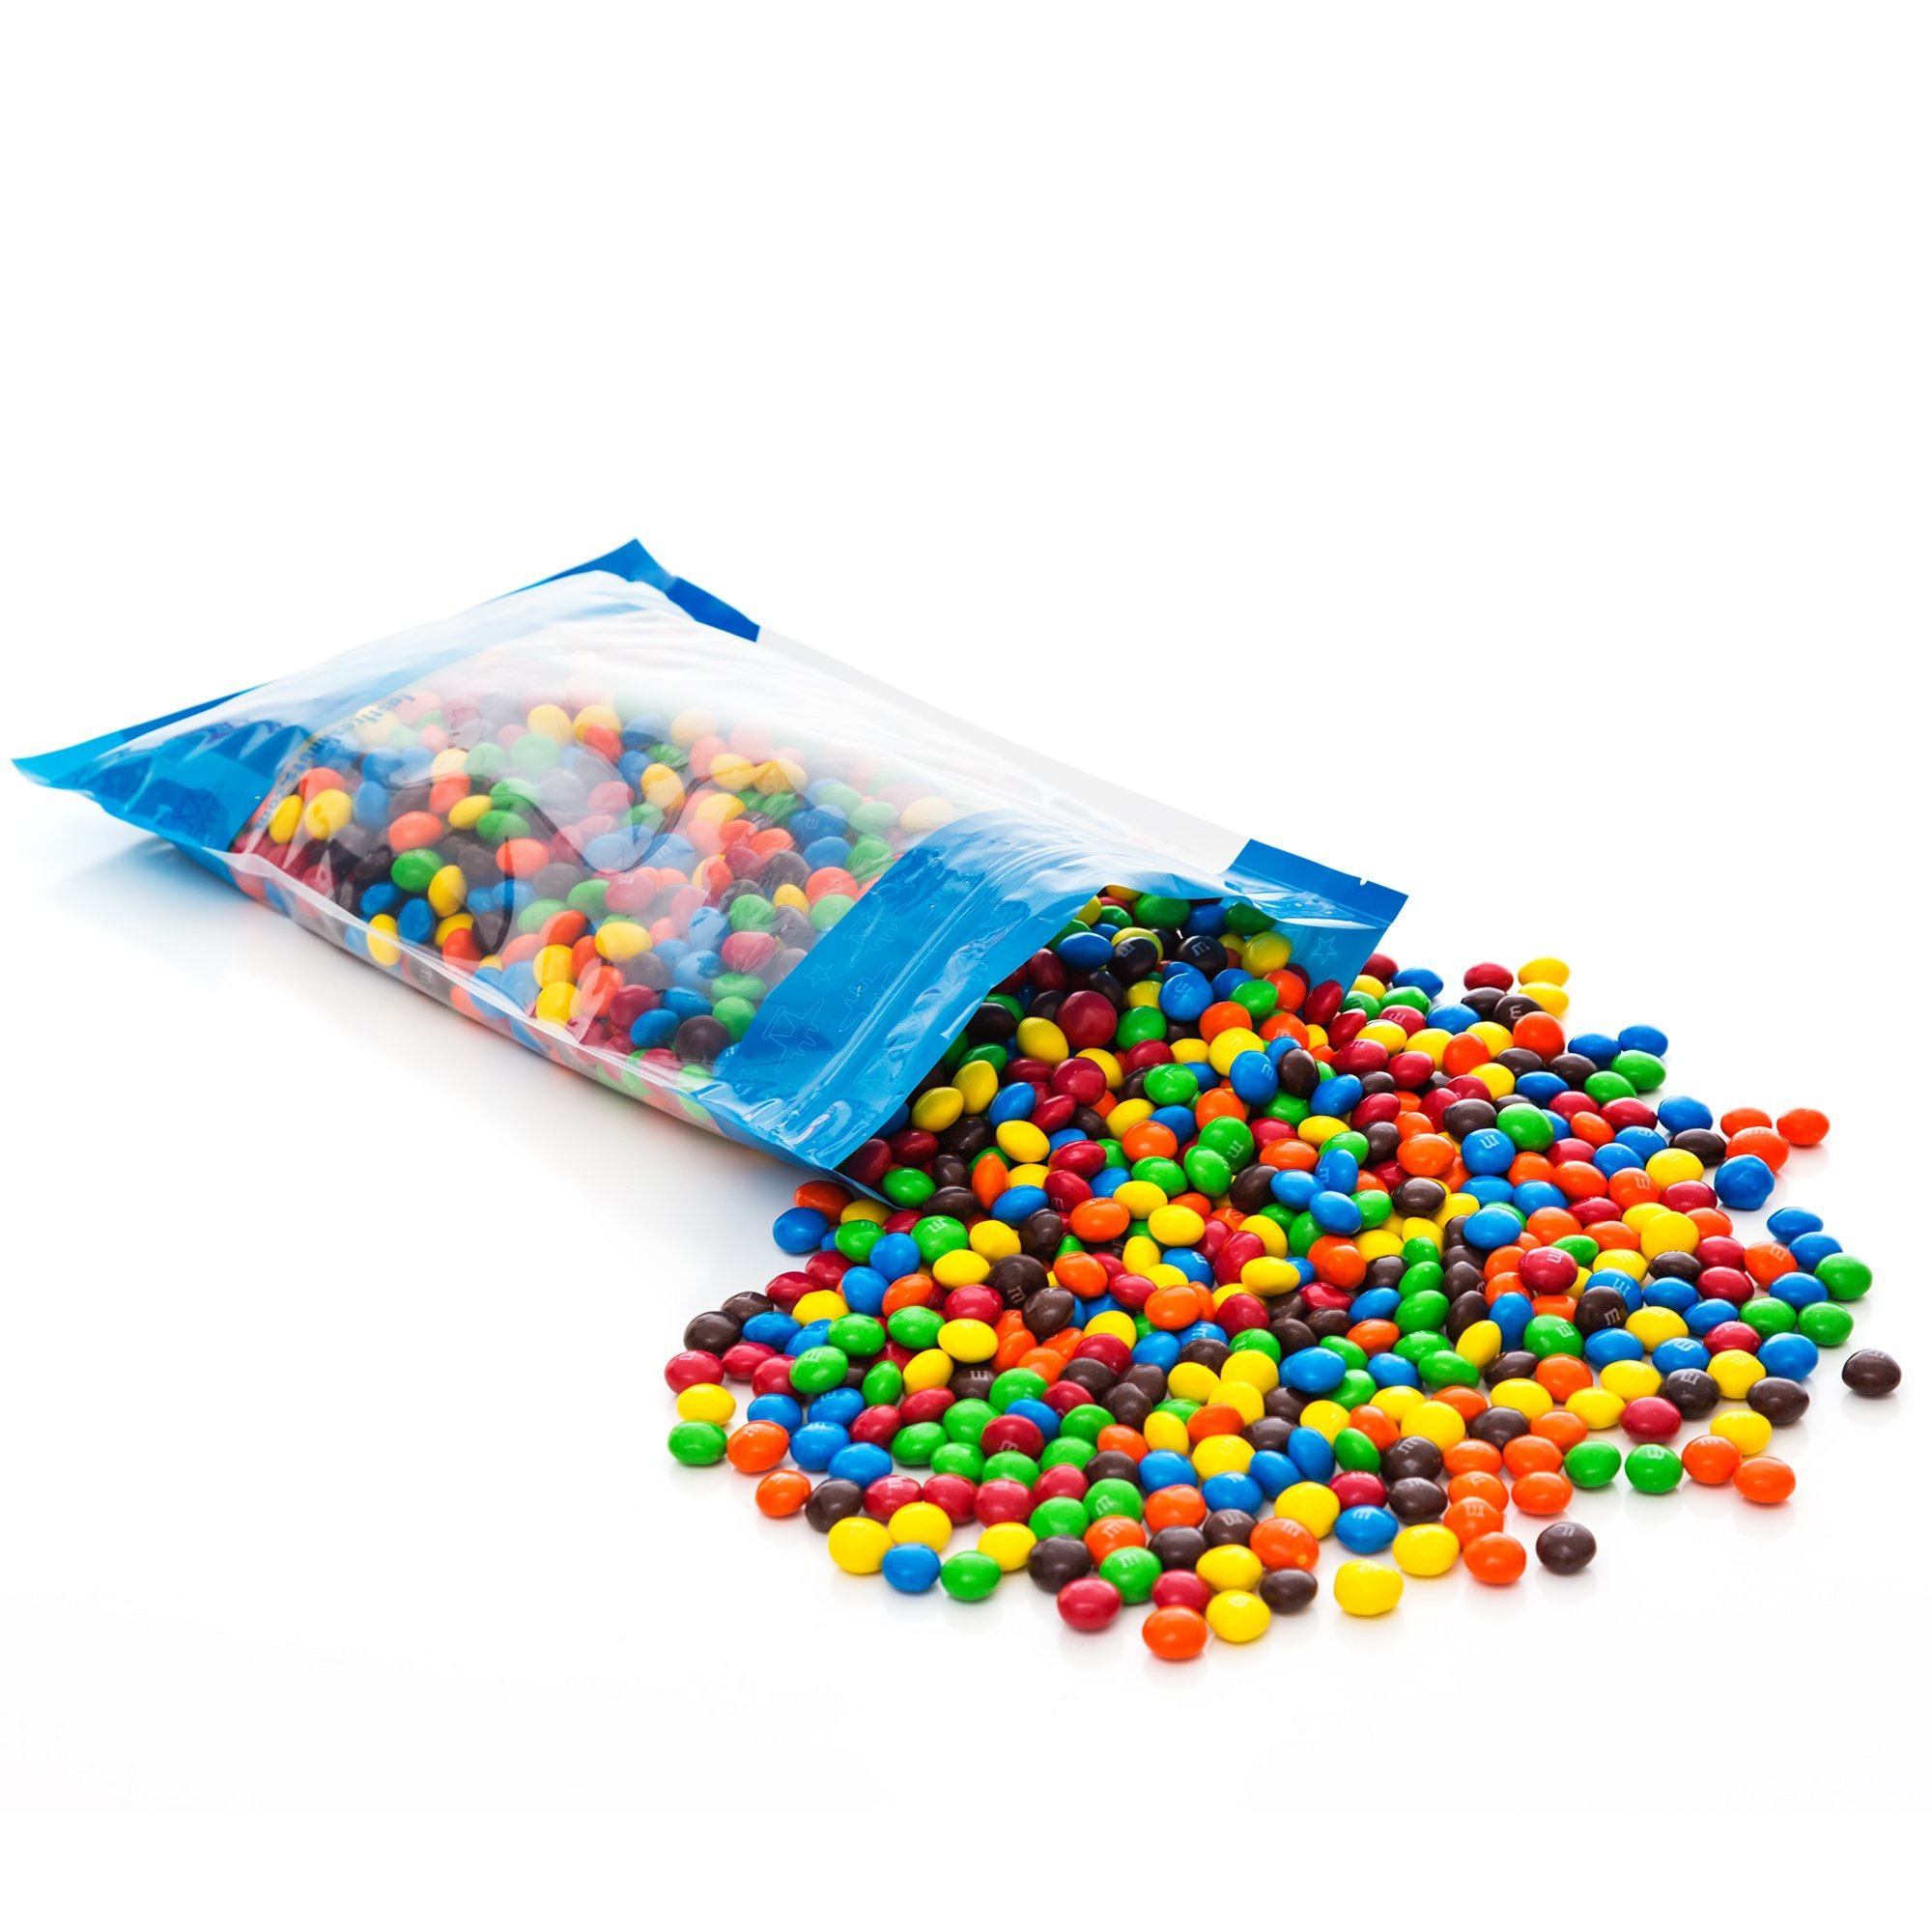 Bulk Peanut Butter M&Ms in Resealable Bomber Bag, Wholesale Peanut Candy Treats (5lb Bag) by Fast Fresh Nuts (Image #3)